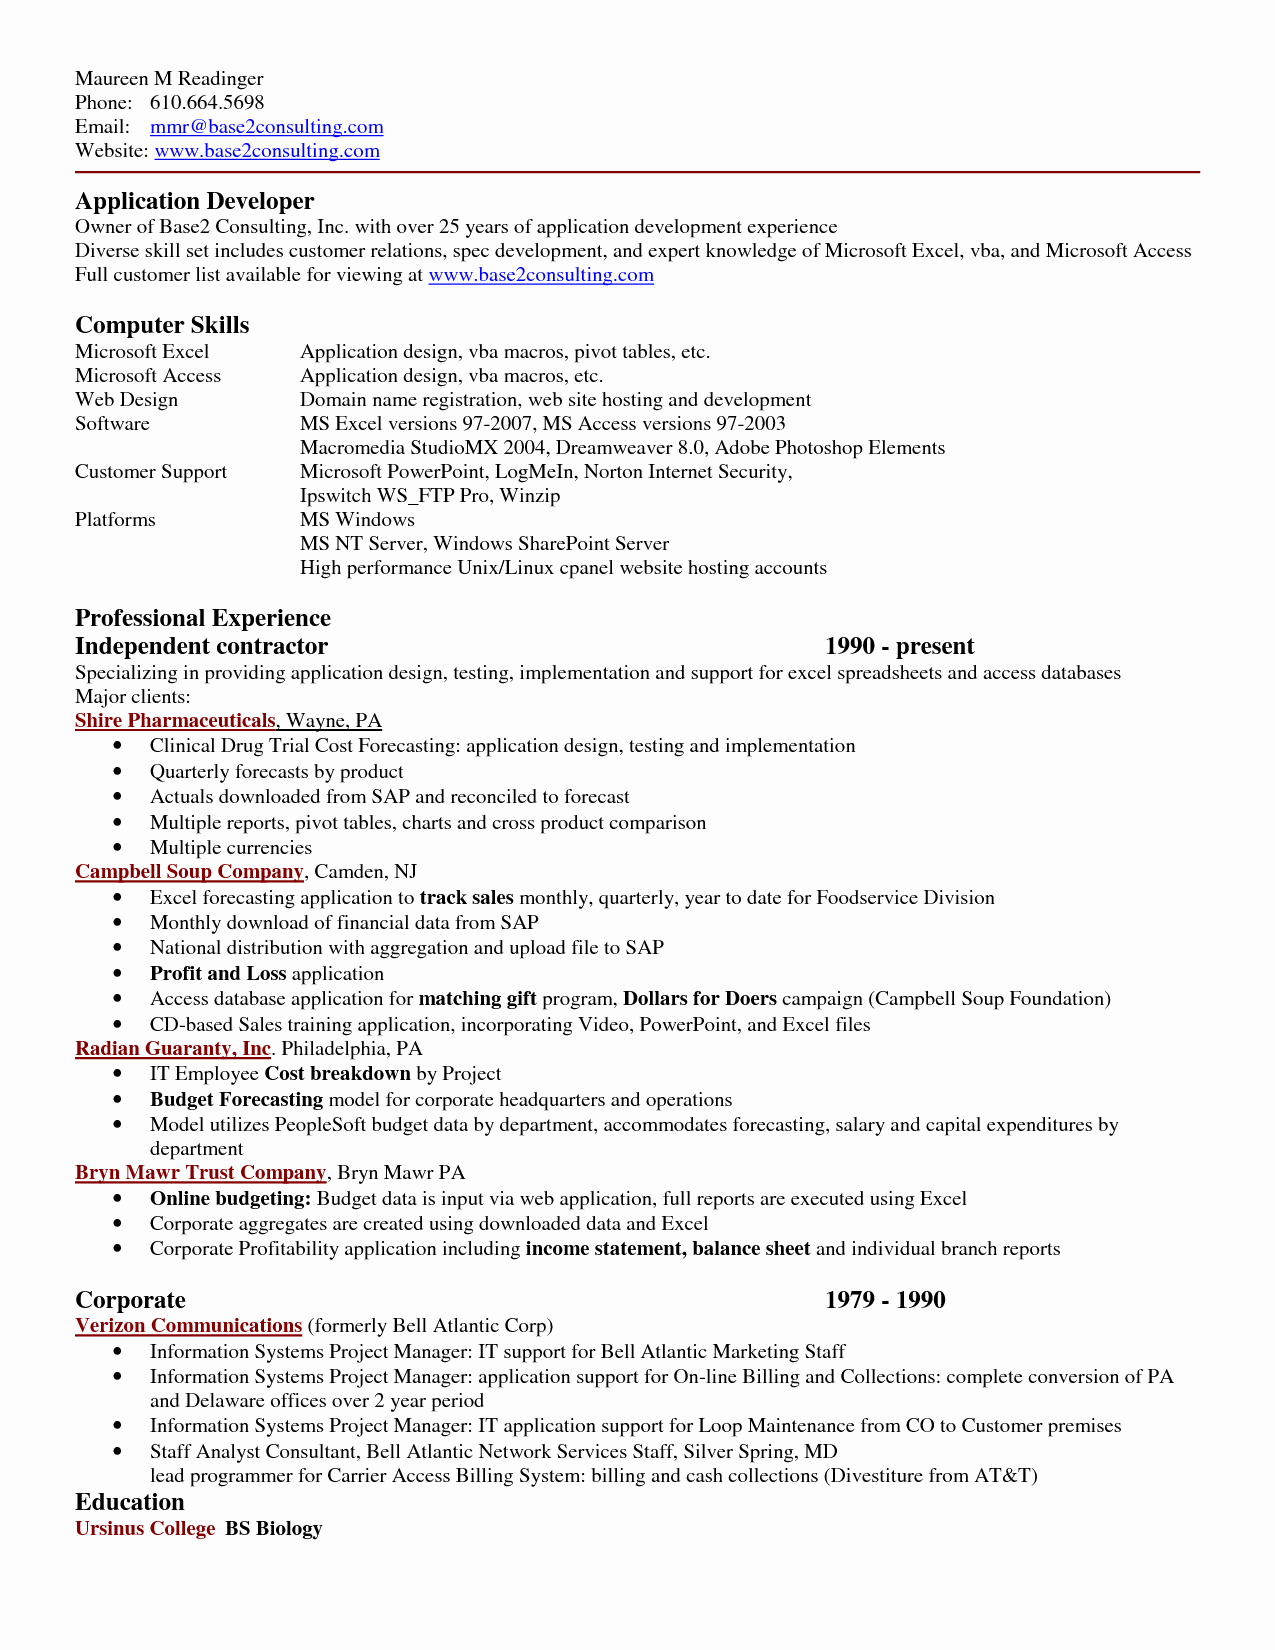 Microsoft Office Skills Resume Template Awesome Best S Of Resume Skills and Abilities List Resume